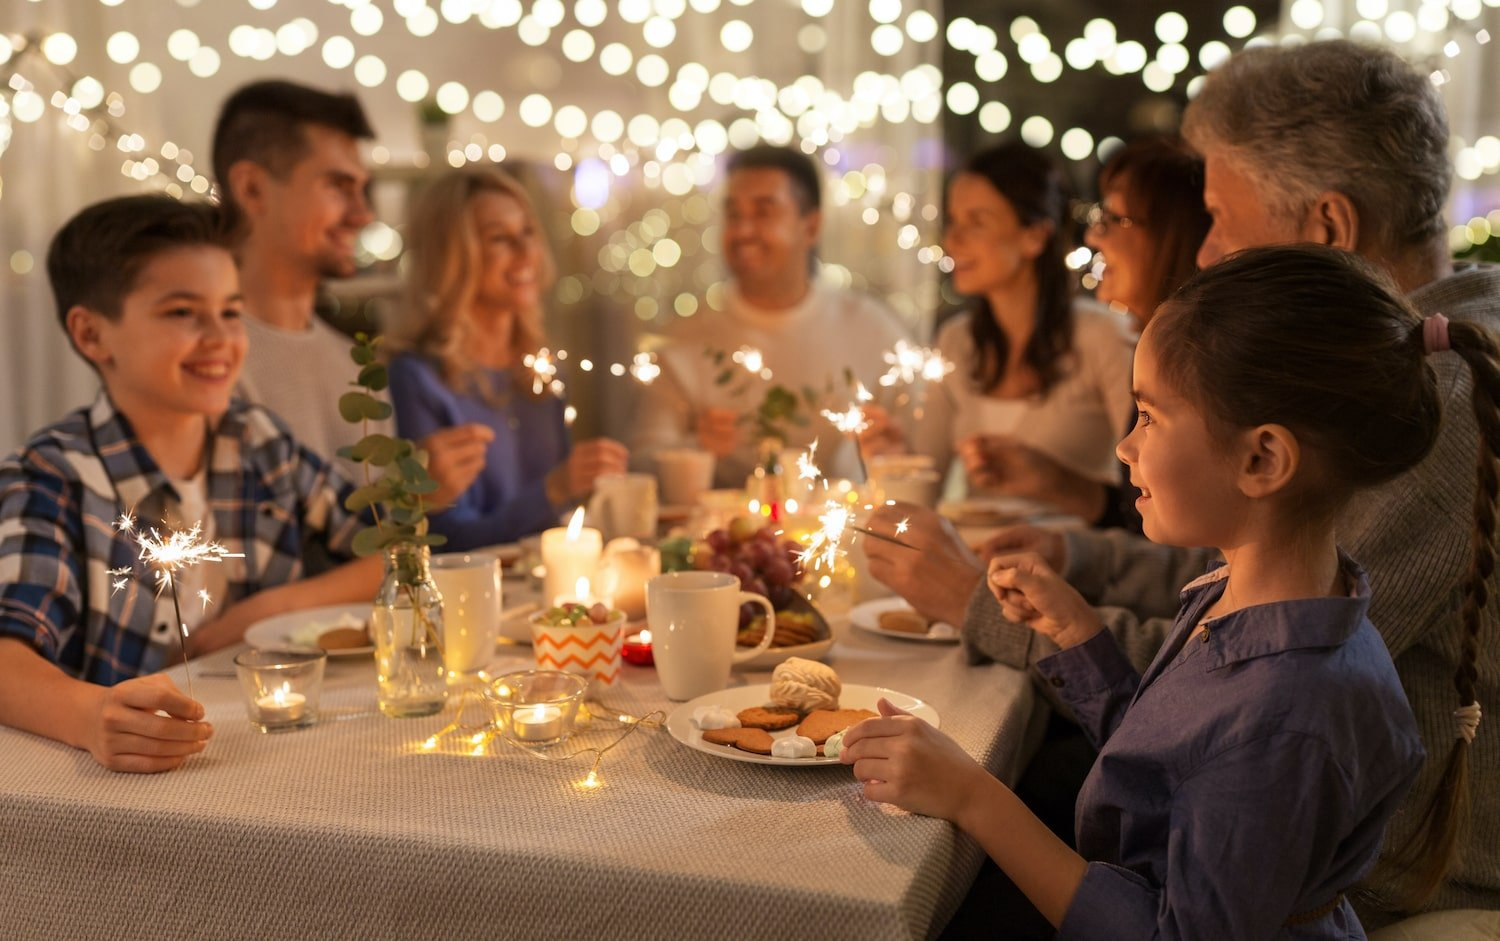 Family dinner during the holidays